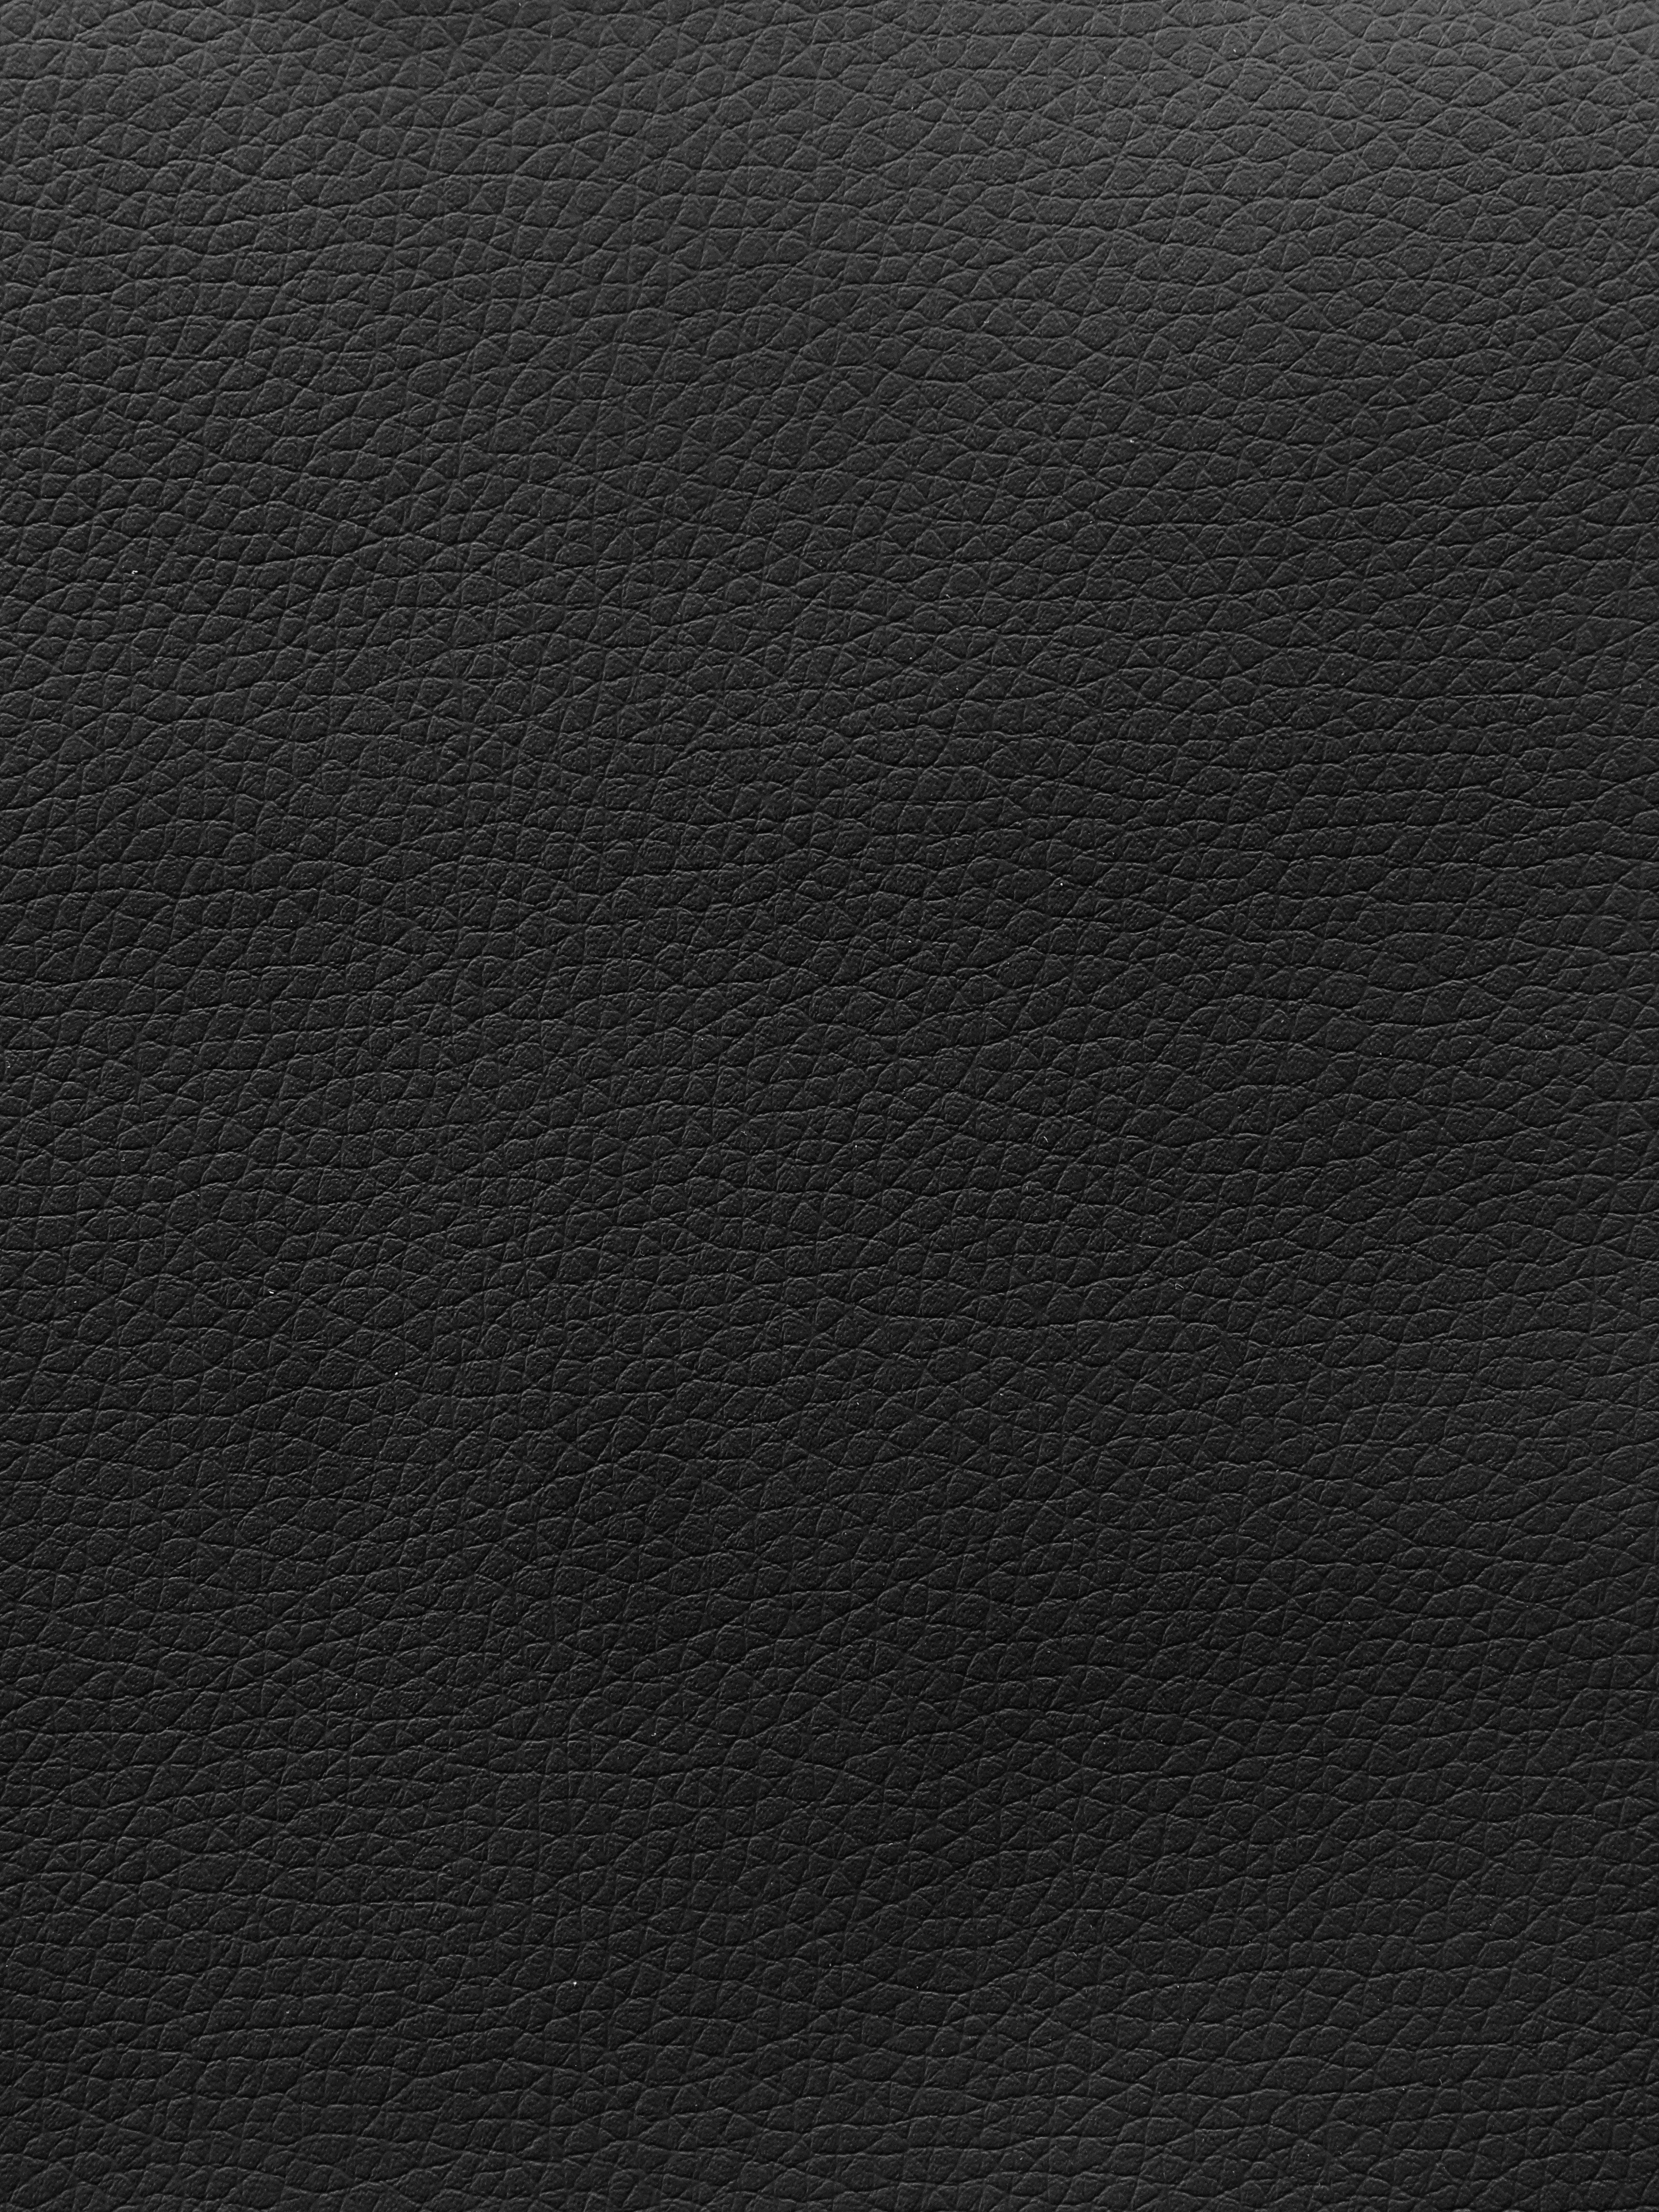 x Wallpaper dark background texture Textures | HD Wallpapers ... for Black Leather Texture Hd  156eri